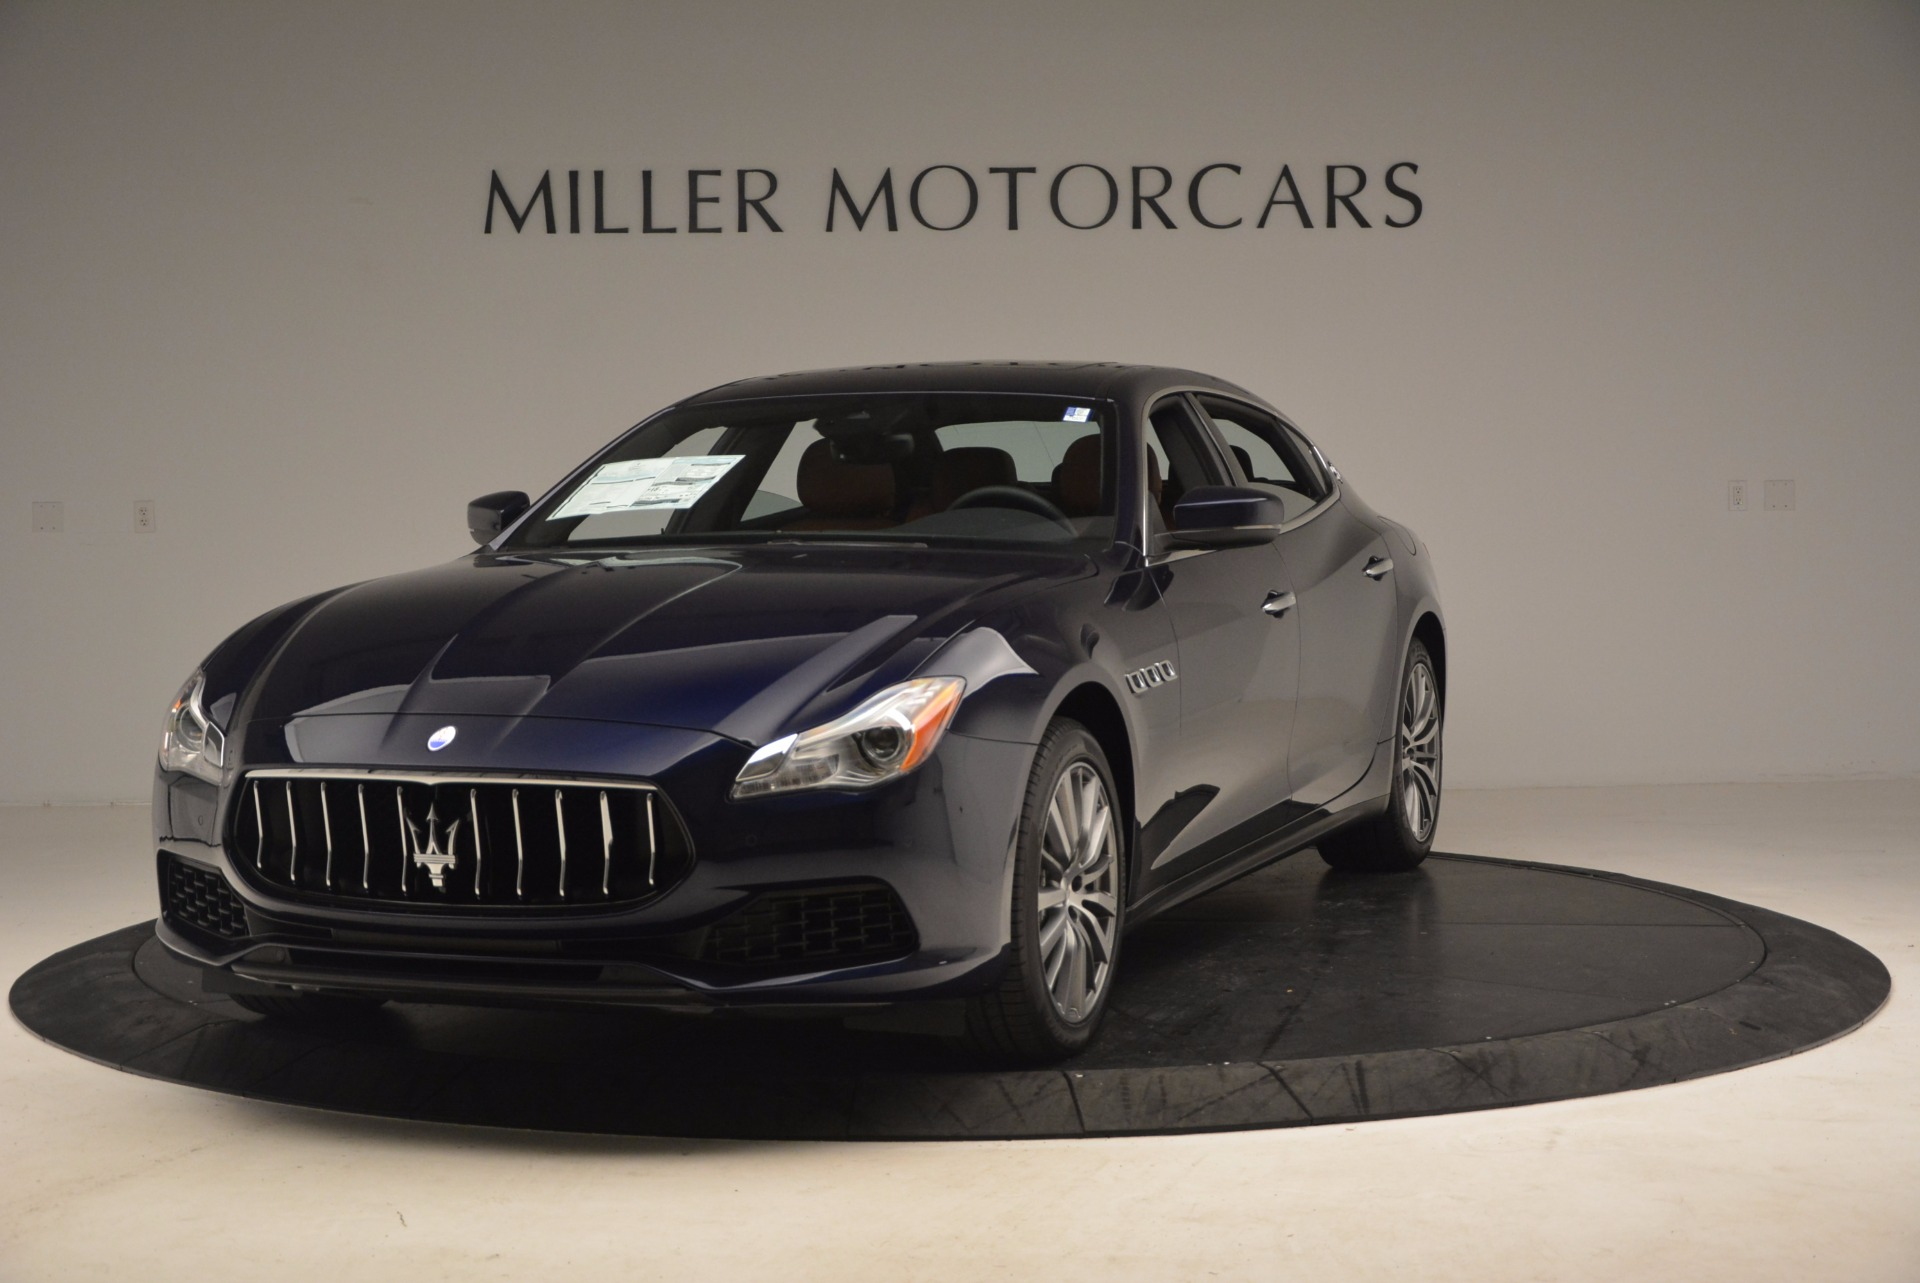 New 2017 Maserati Quattroporte S Q4 for sale Sold at Bugatti of Greenwich in Greenwich CT 06830 1